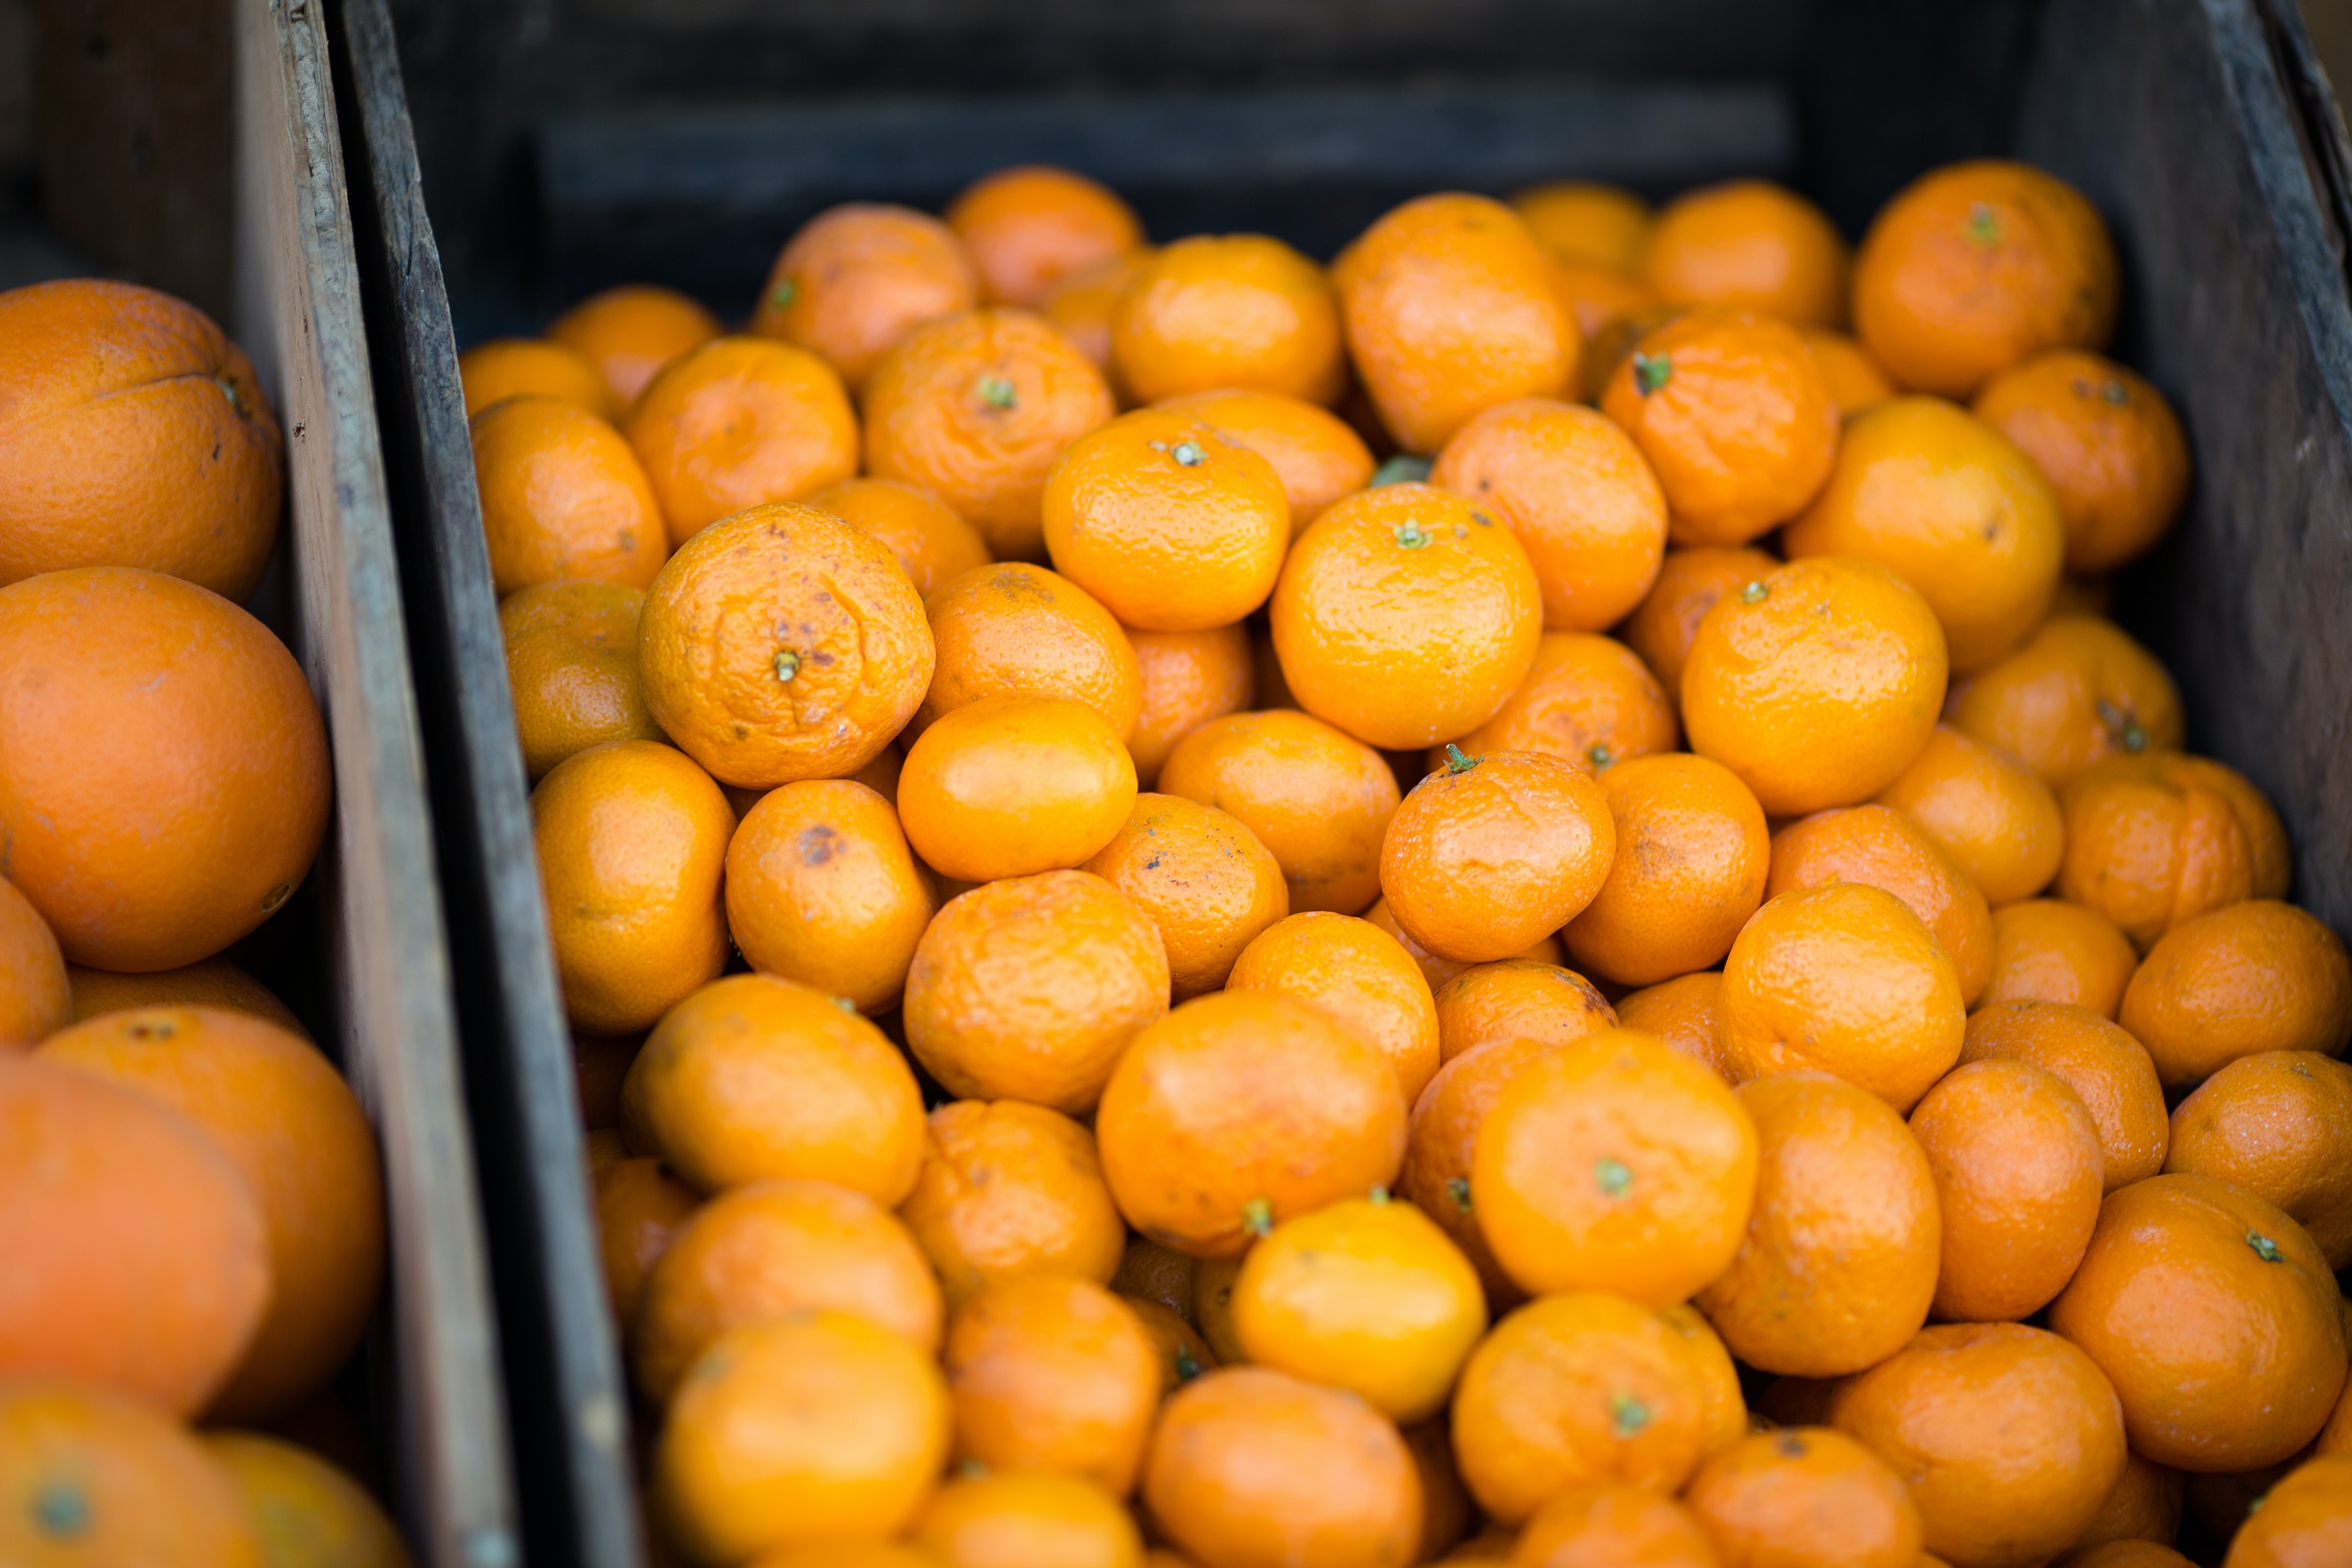 A box full of tangerines